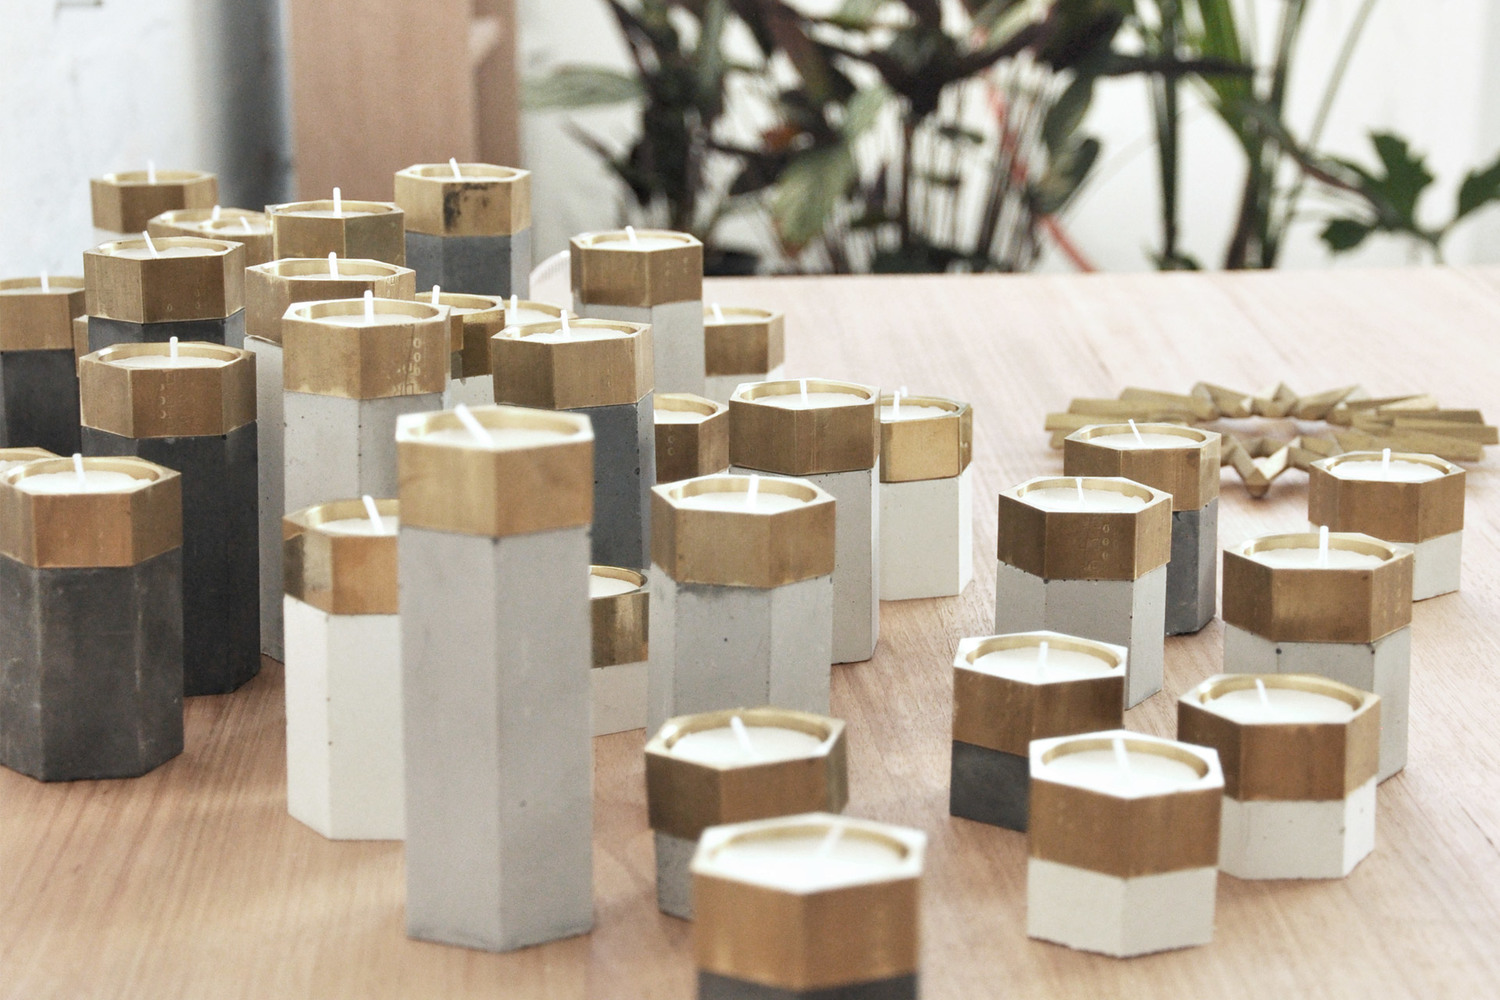 The interlocking 'Hex' candle holders in white or grey concrete and brass by Archier Studio.